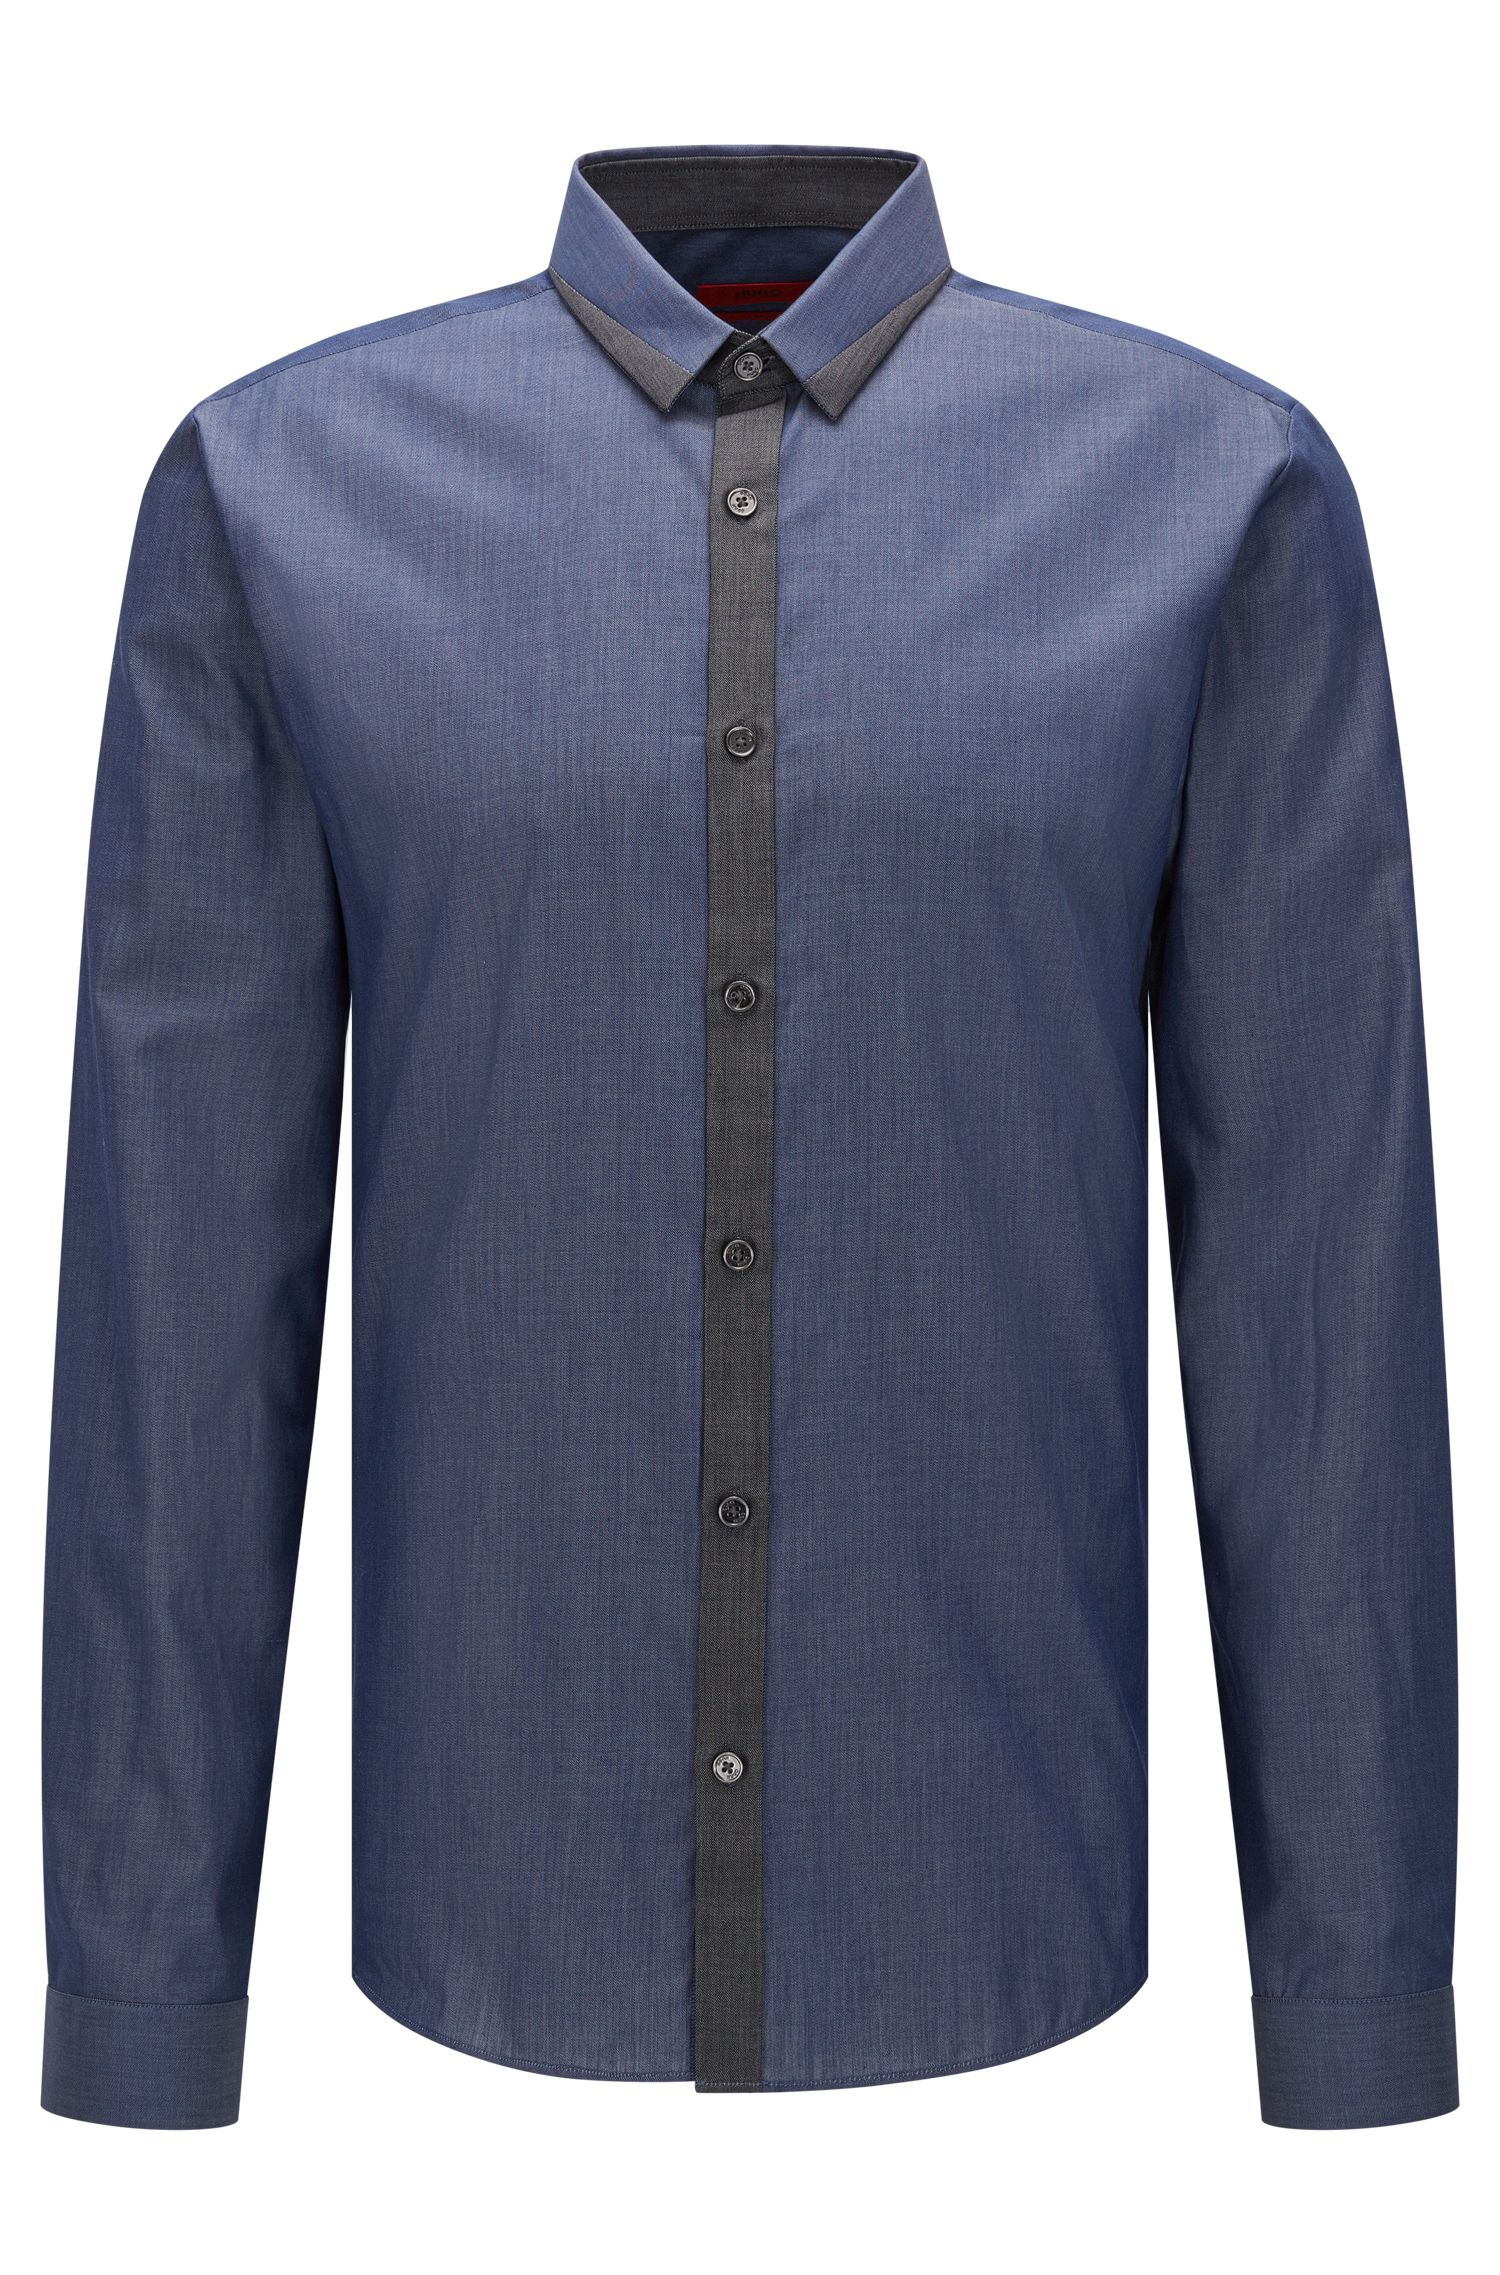 Extra-slim-fit shirt in mixed denim hues